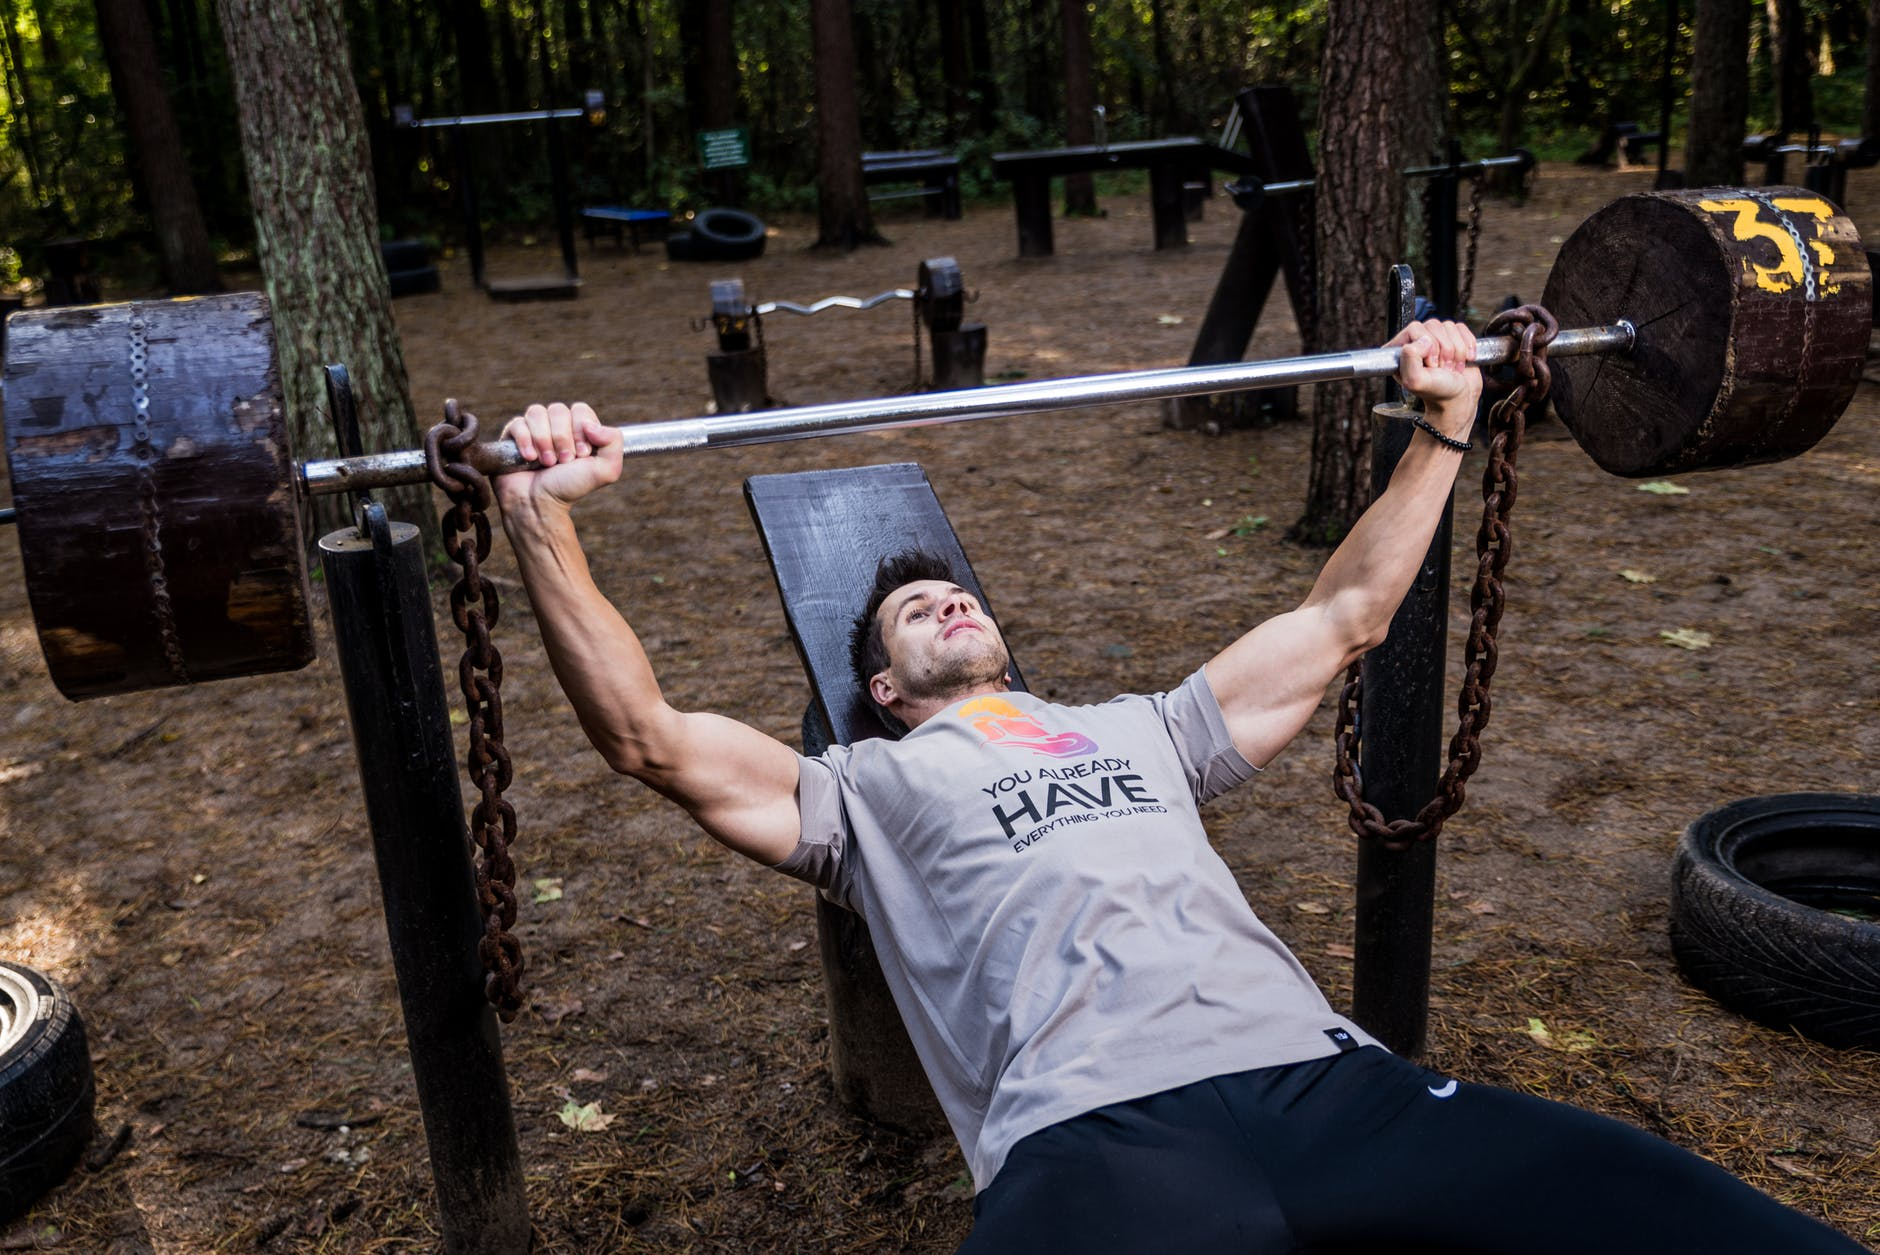 """HIIT Workout is Really an """"Anaerobic Exercise"""": Why Everyone Should Practice Resistance Training for Effective Weightloss"""